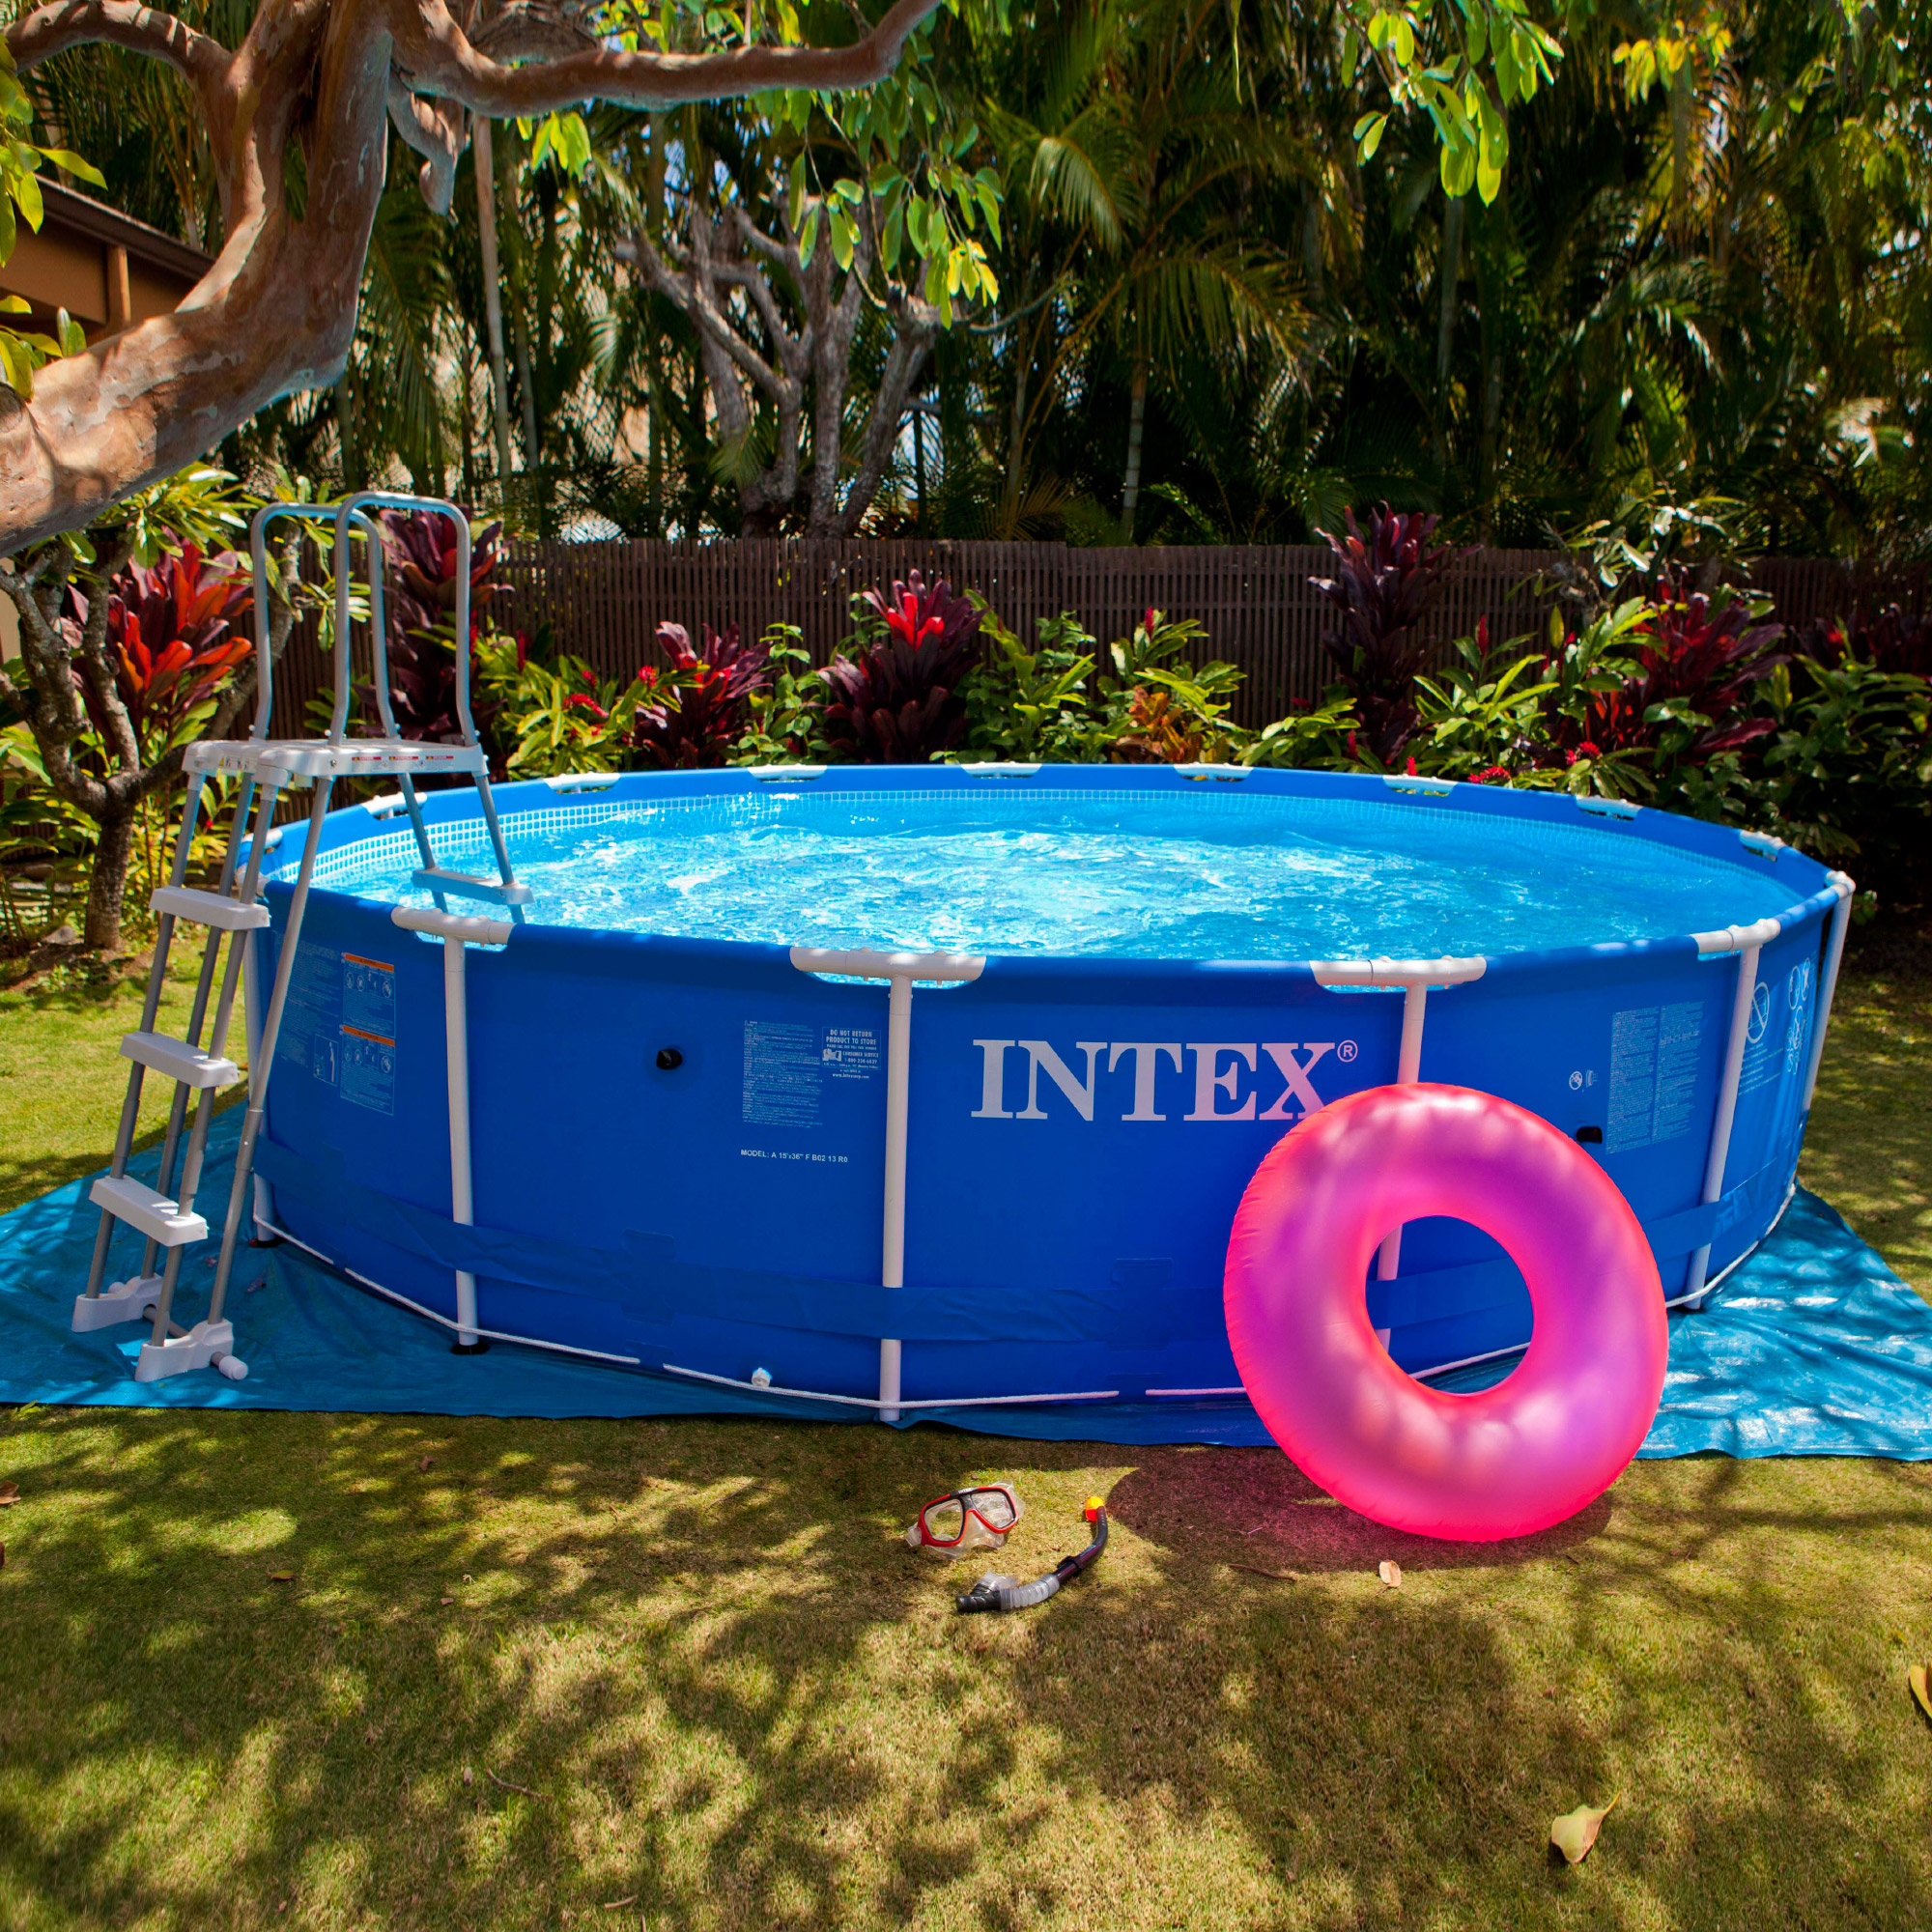 Intex 28202fr piscine hors sol tubulaire ronde 305 x for Piscine hors sol intex ronde